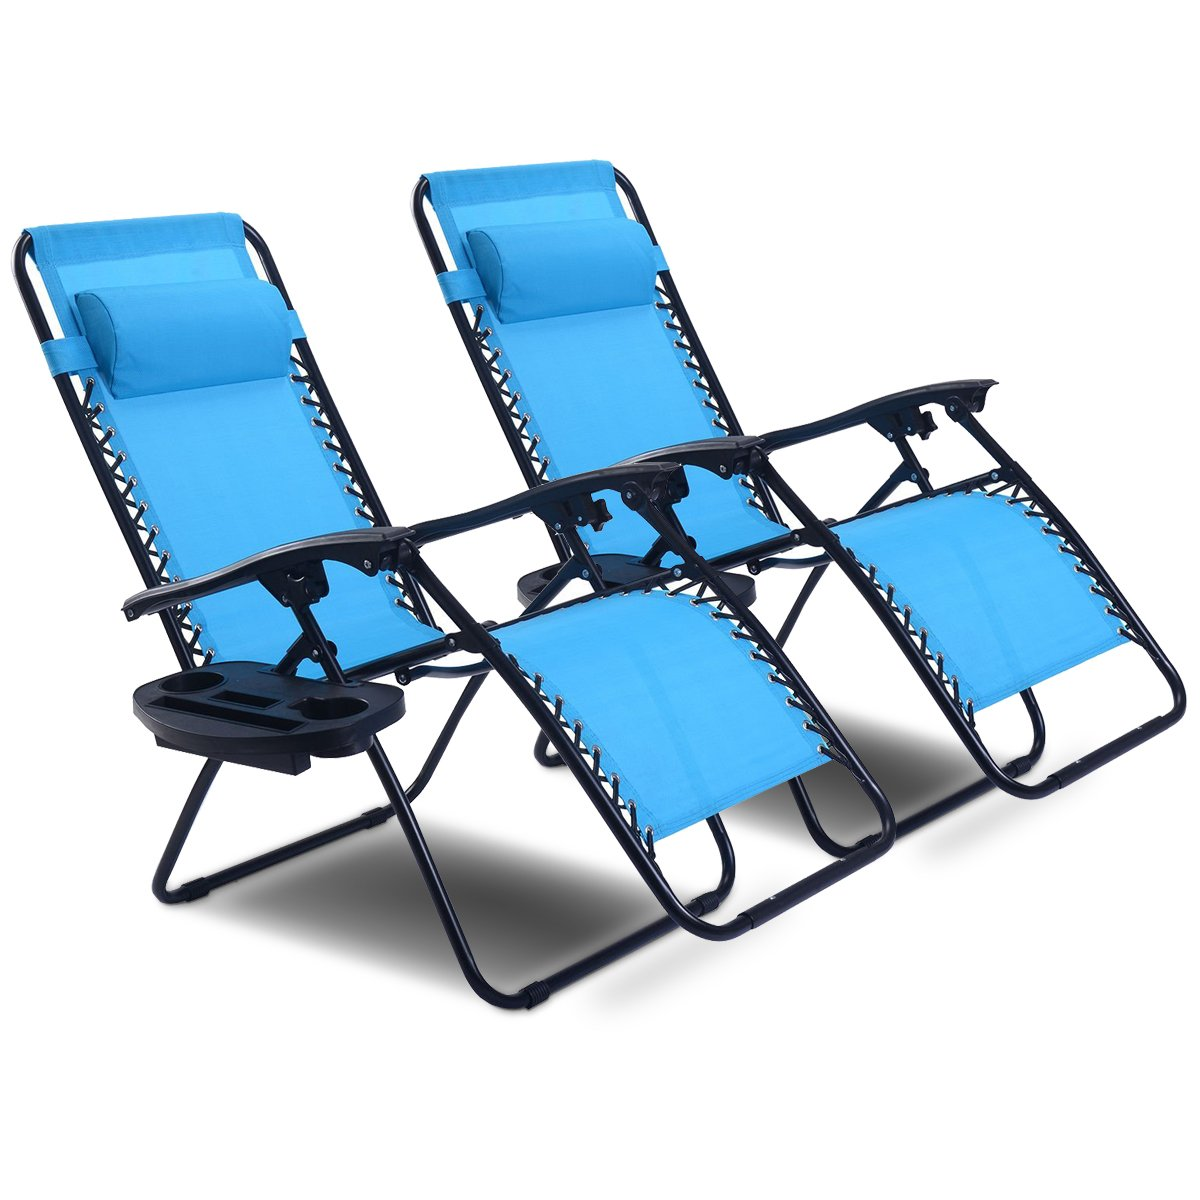 Goplus 2PC Zero Gravity Chairs Lounge Patio Folding Recliner Outdoor Yard Beach with Cup Holder Superbuy